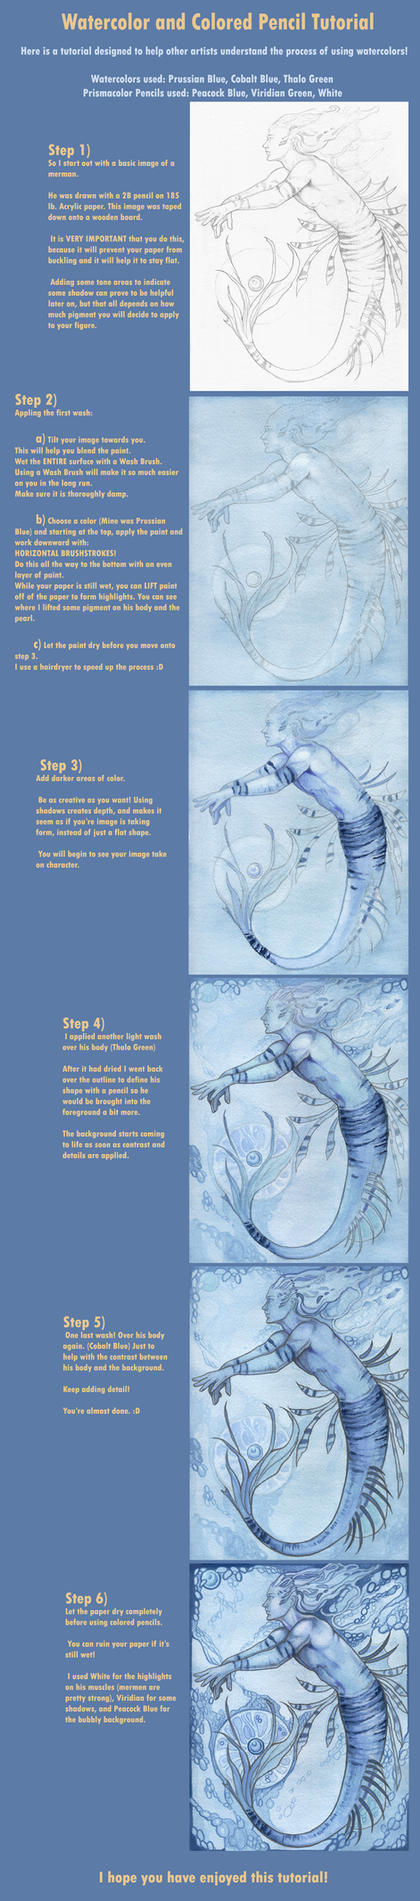 Watercolor and Pencil Tutorial by Aikya